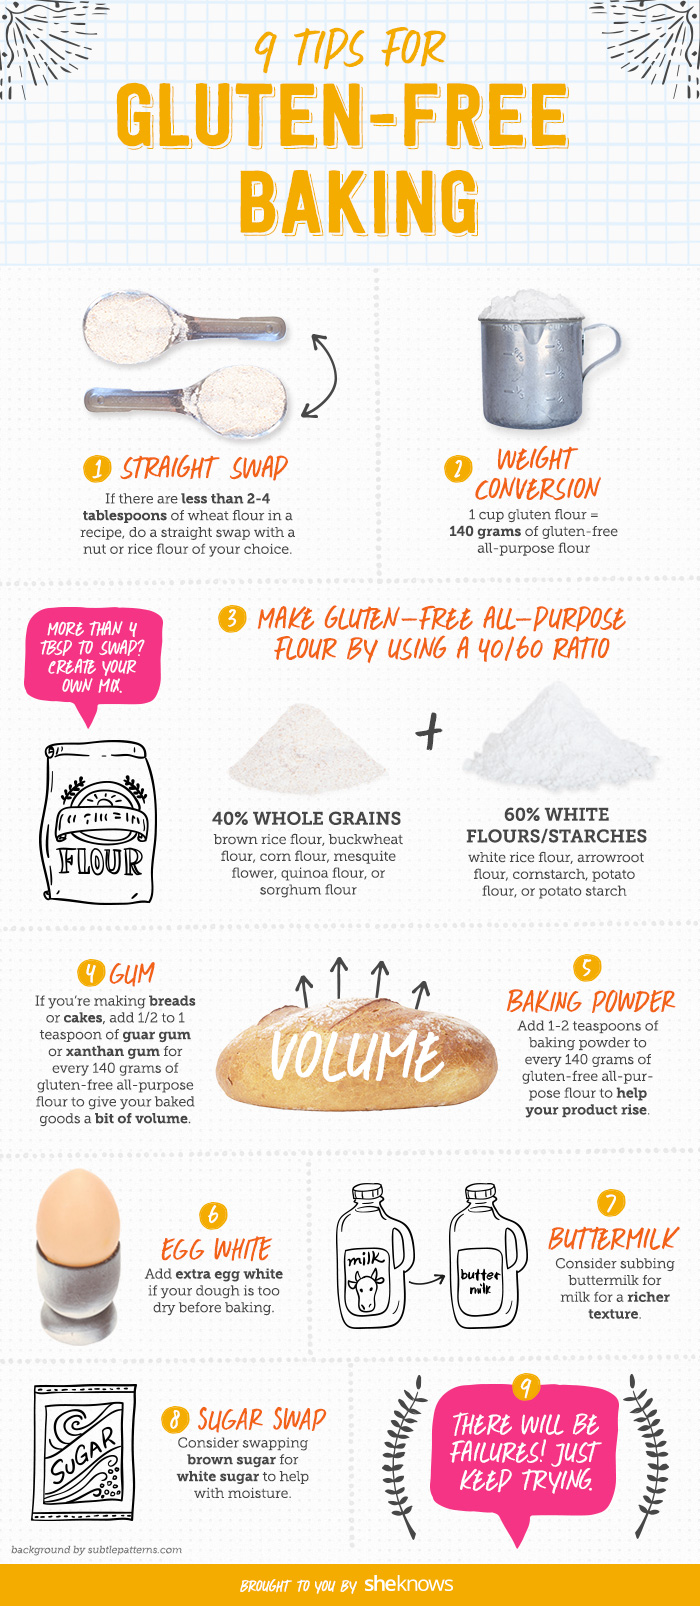 Gluten free tips infographic